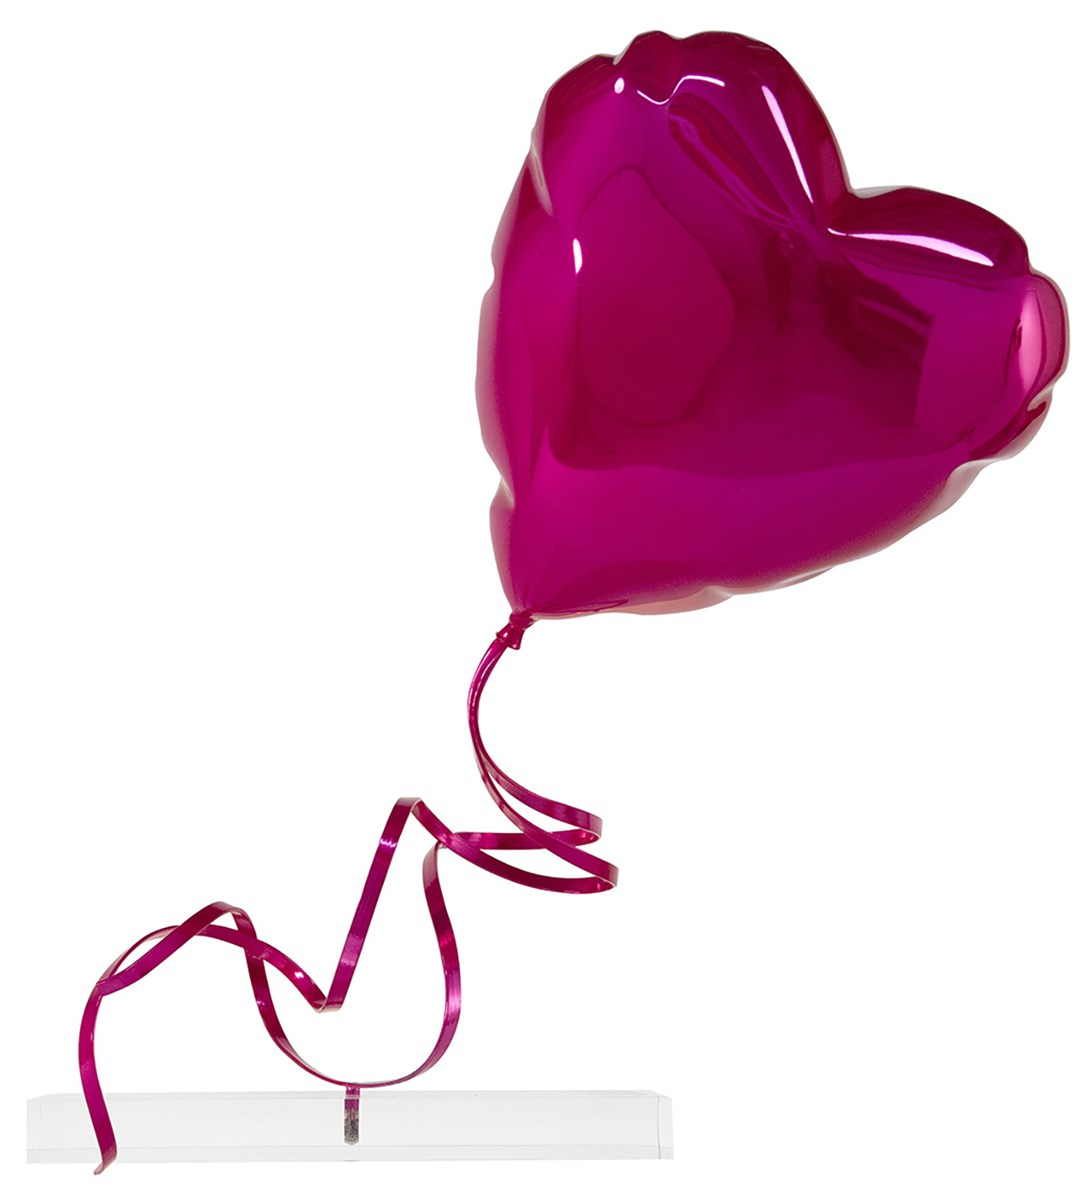 Flying Balloon Heart (Pink)